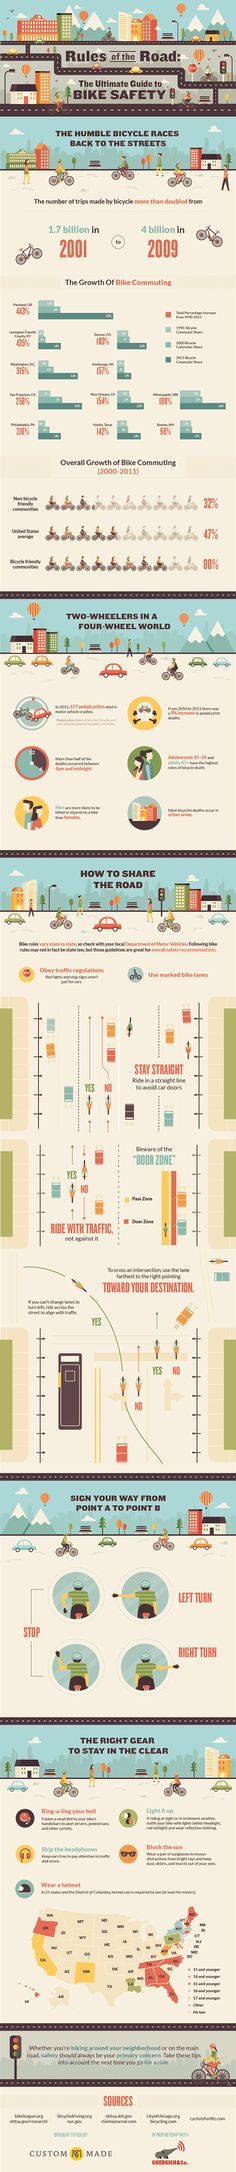 Unique Infographic Design, The Ultimate Guide To Bike Safety via @mstresky #Infographic #Design #Bike